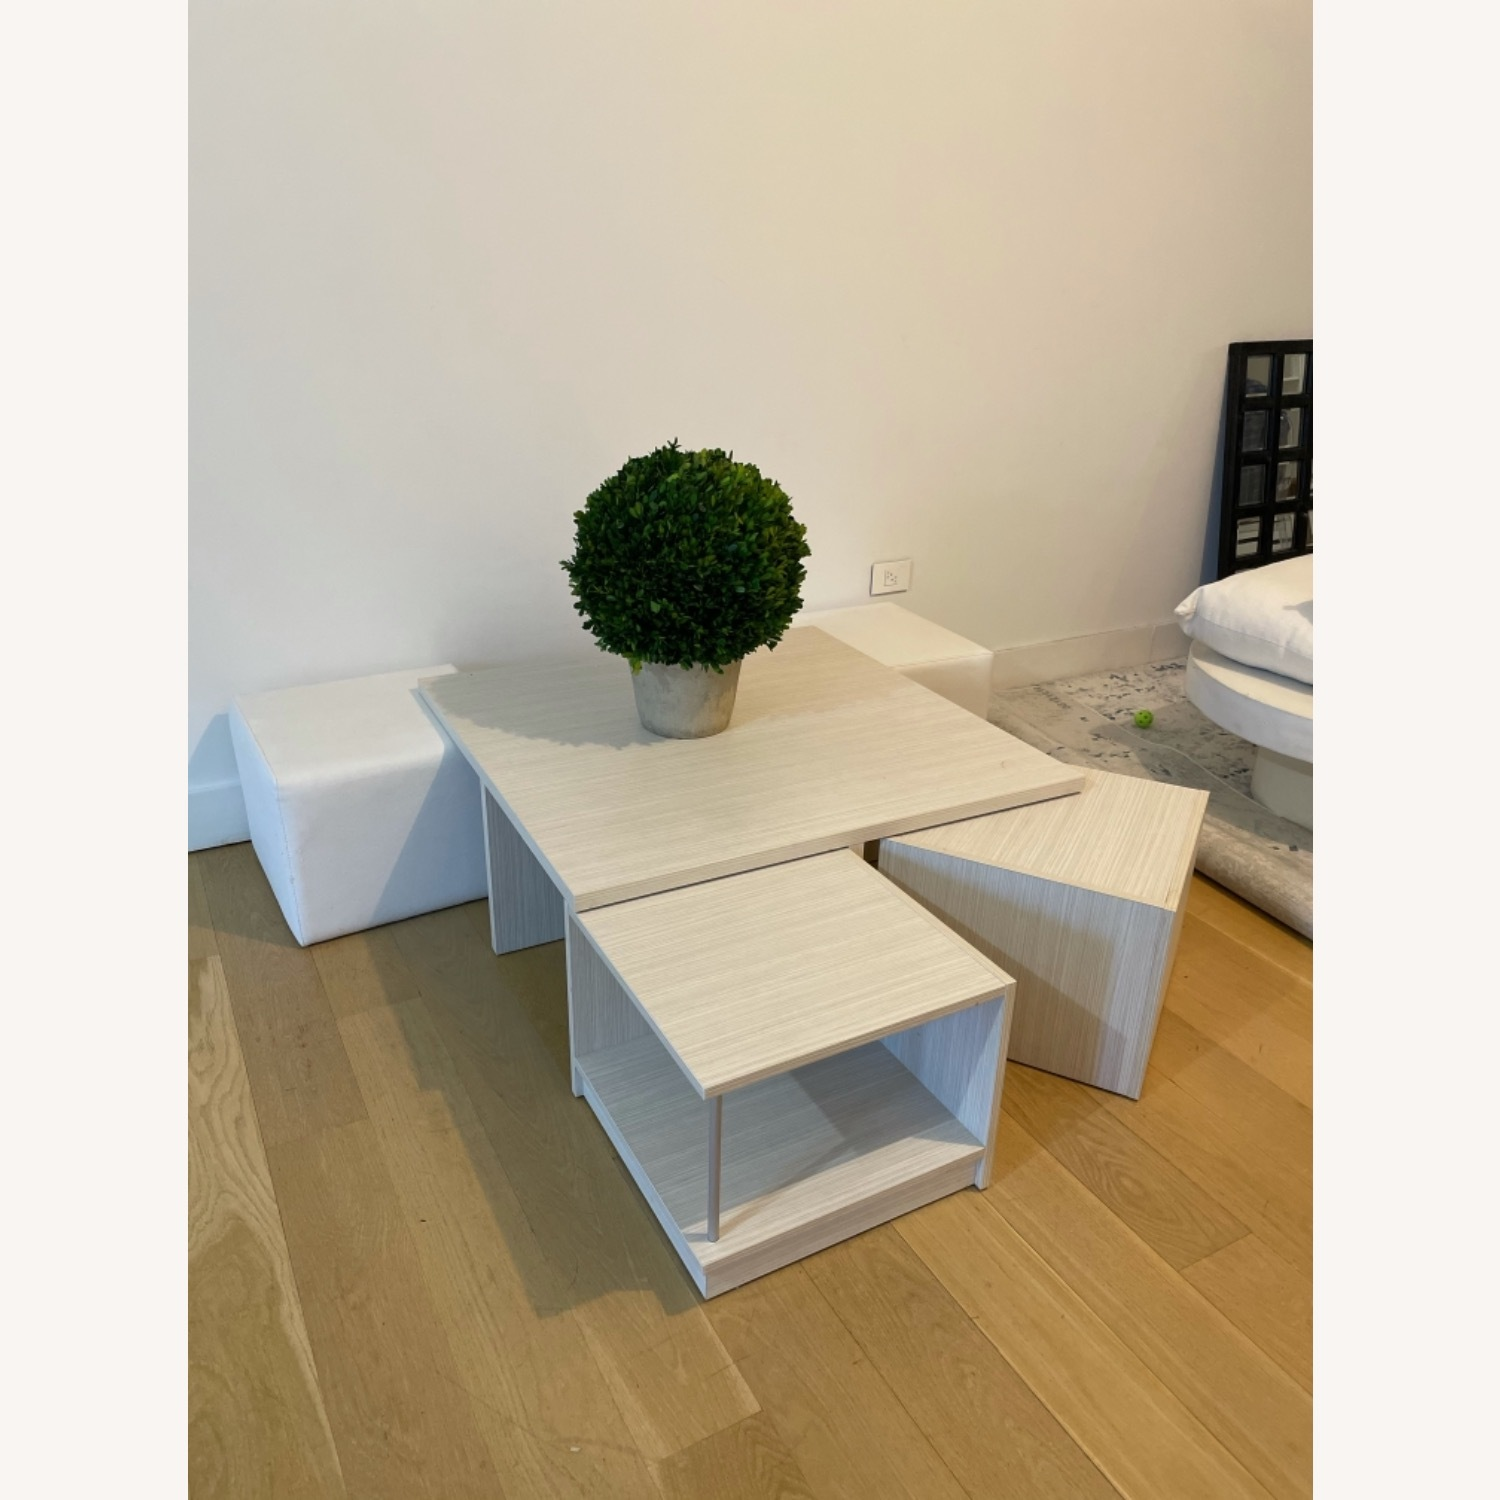 Modani Wooden Coffee Table with Ottoman Stools - image-7